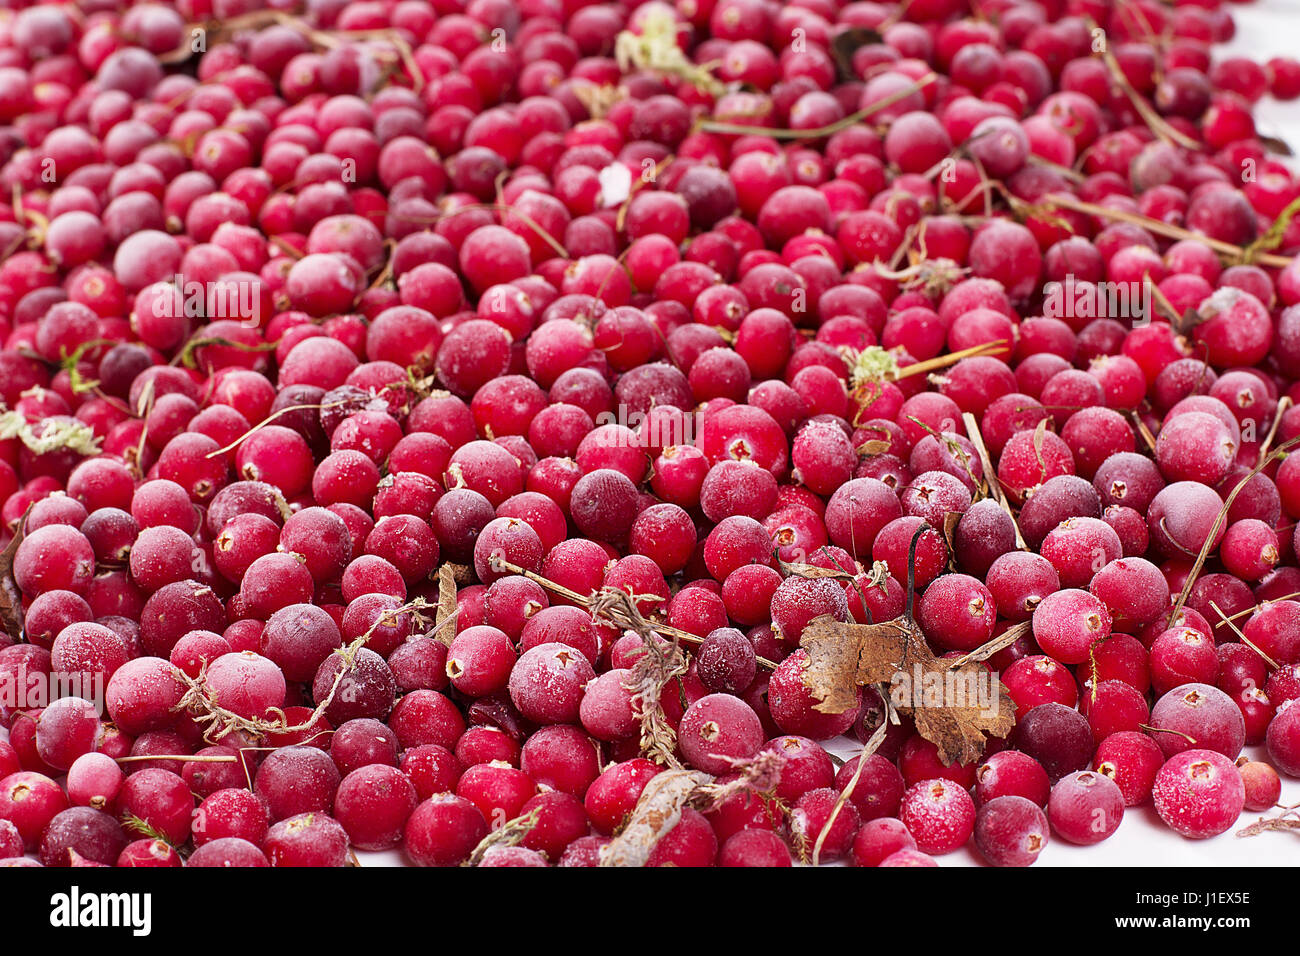 it is a lot of scattered frozen cowberry berries - Stock Image